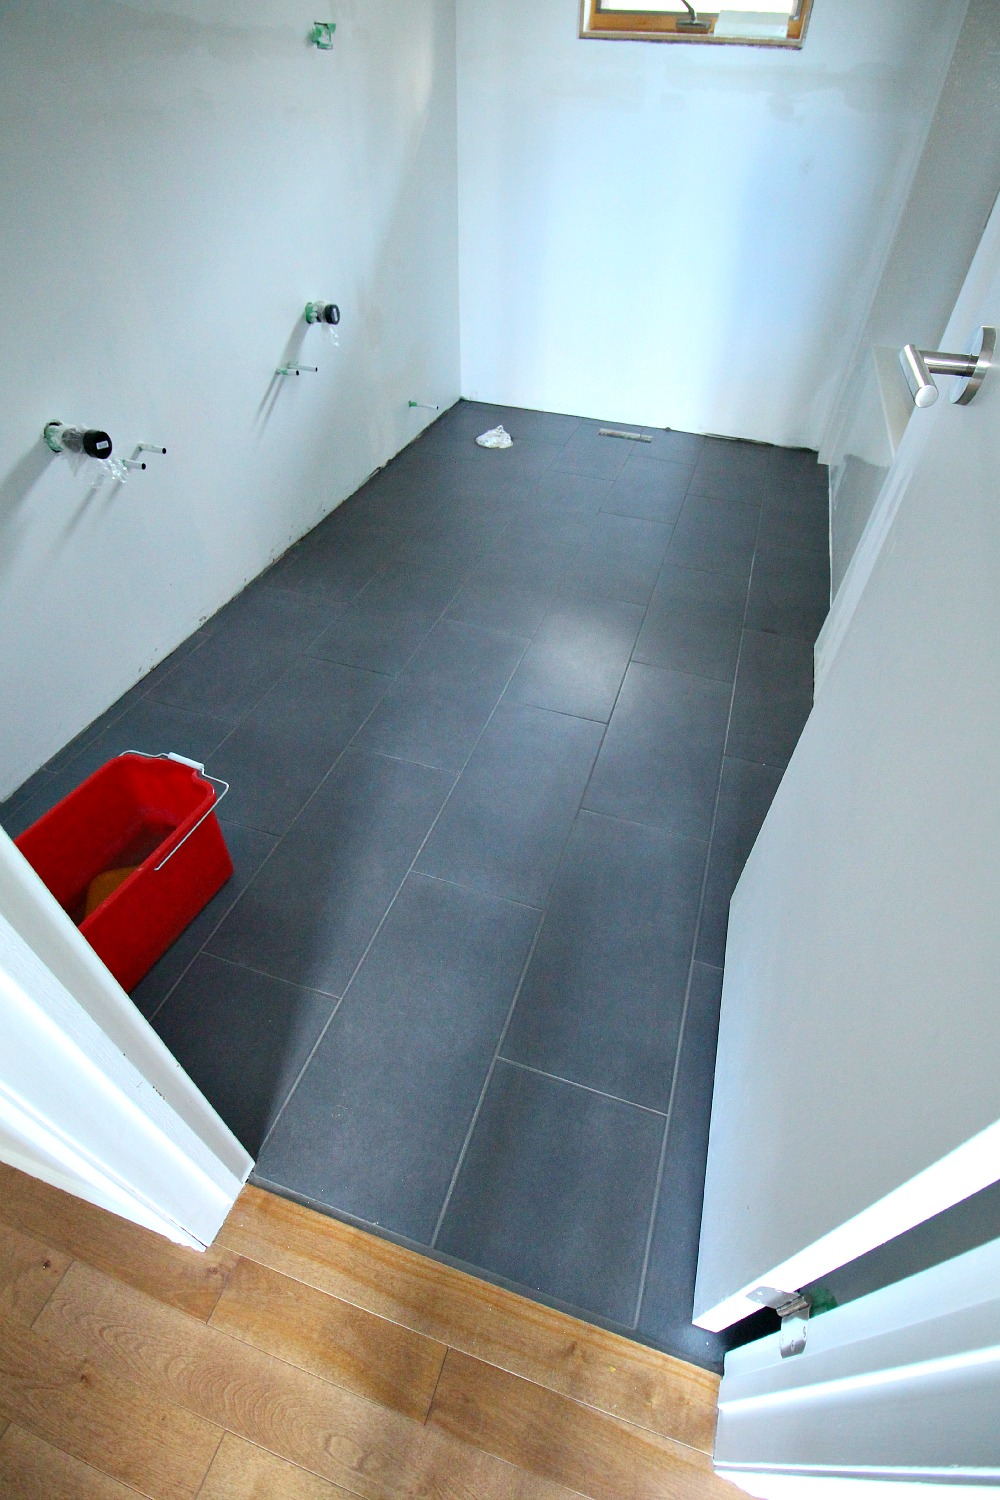 Charcoal grey floor tile